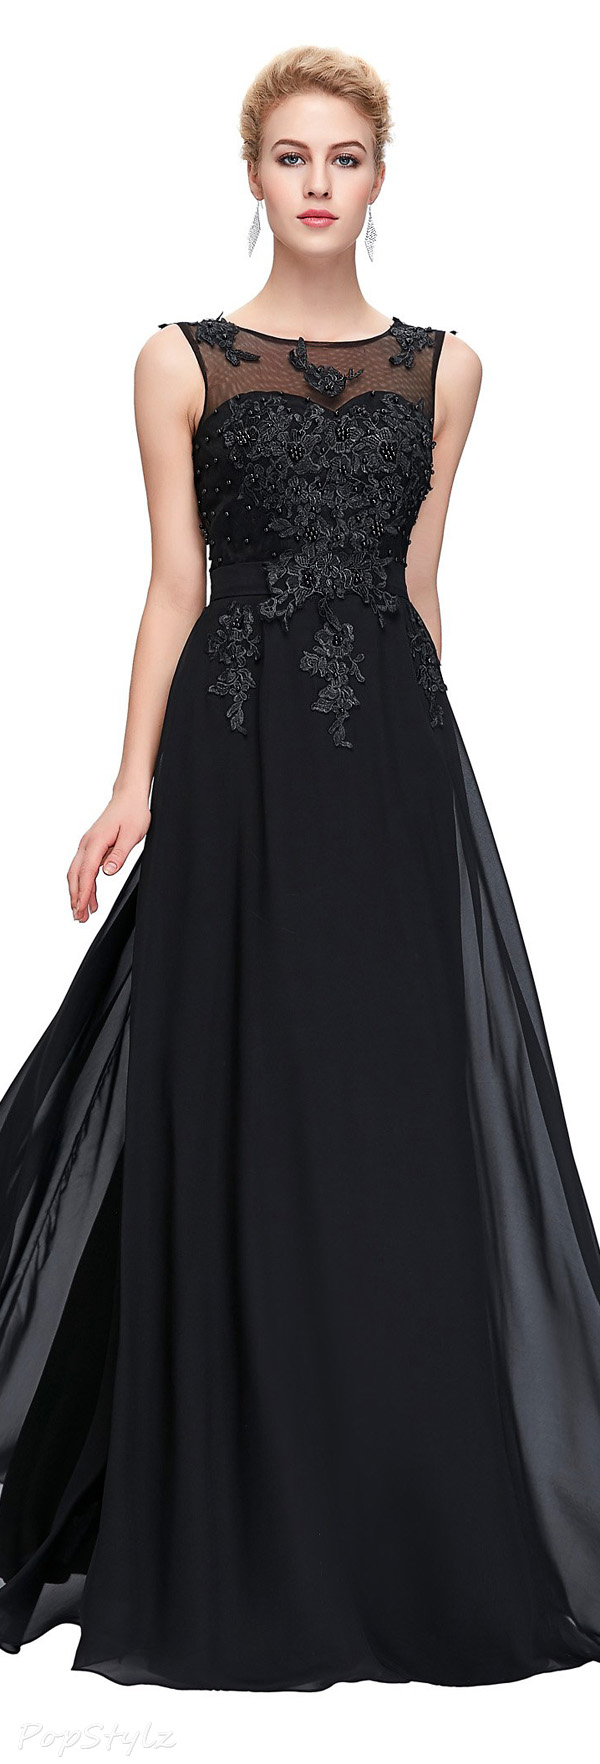 Grace Karin Beads & Applique Evening Gown